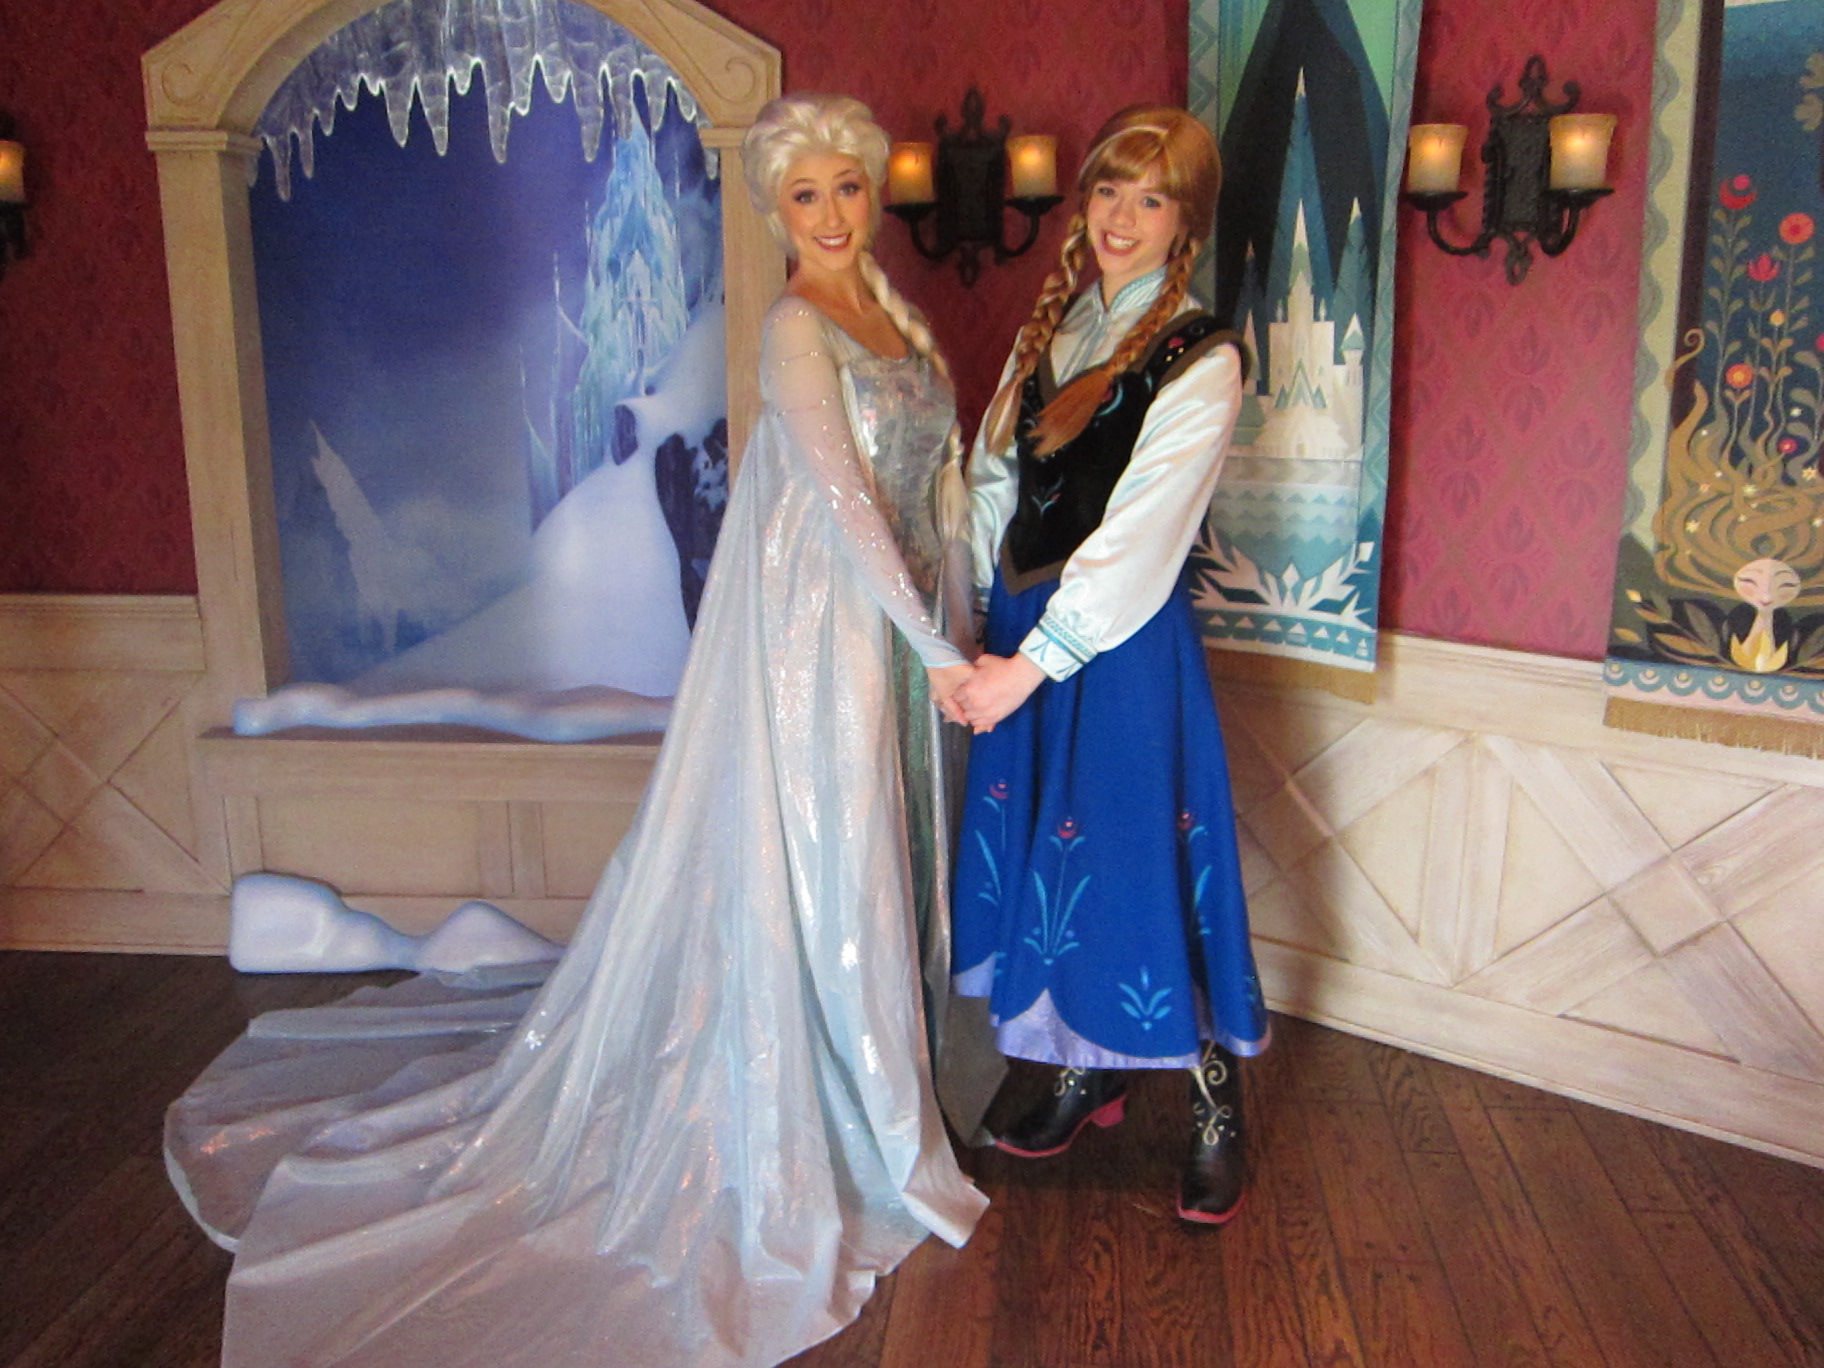 Confirmed Frozen Pre Parade Coming To Disneyland This Summer